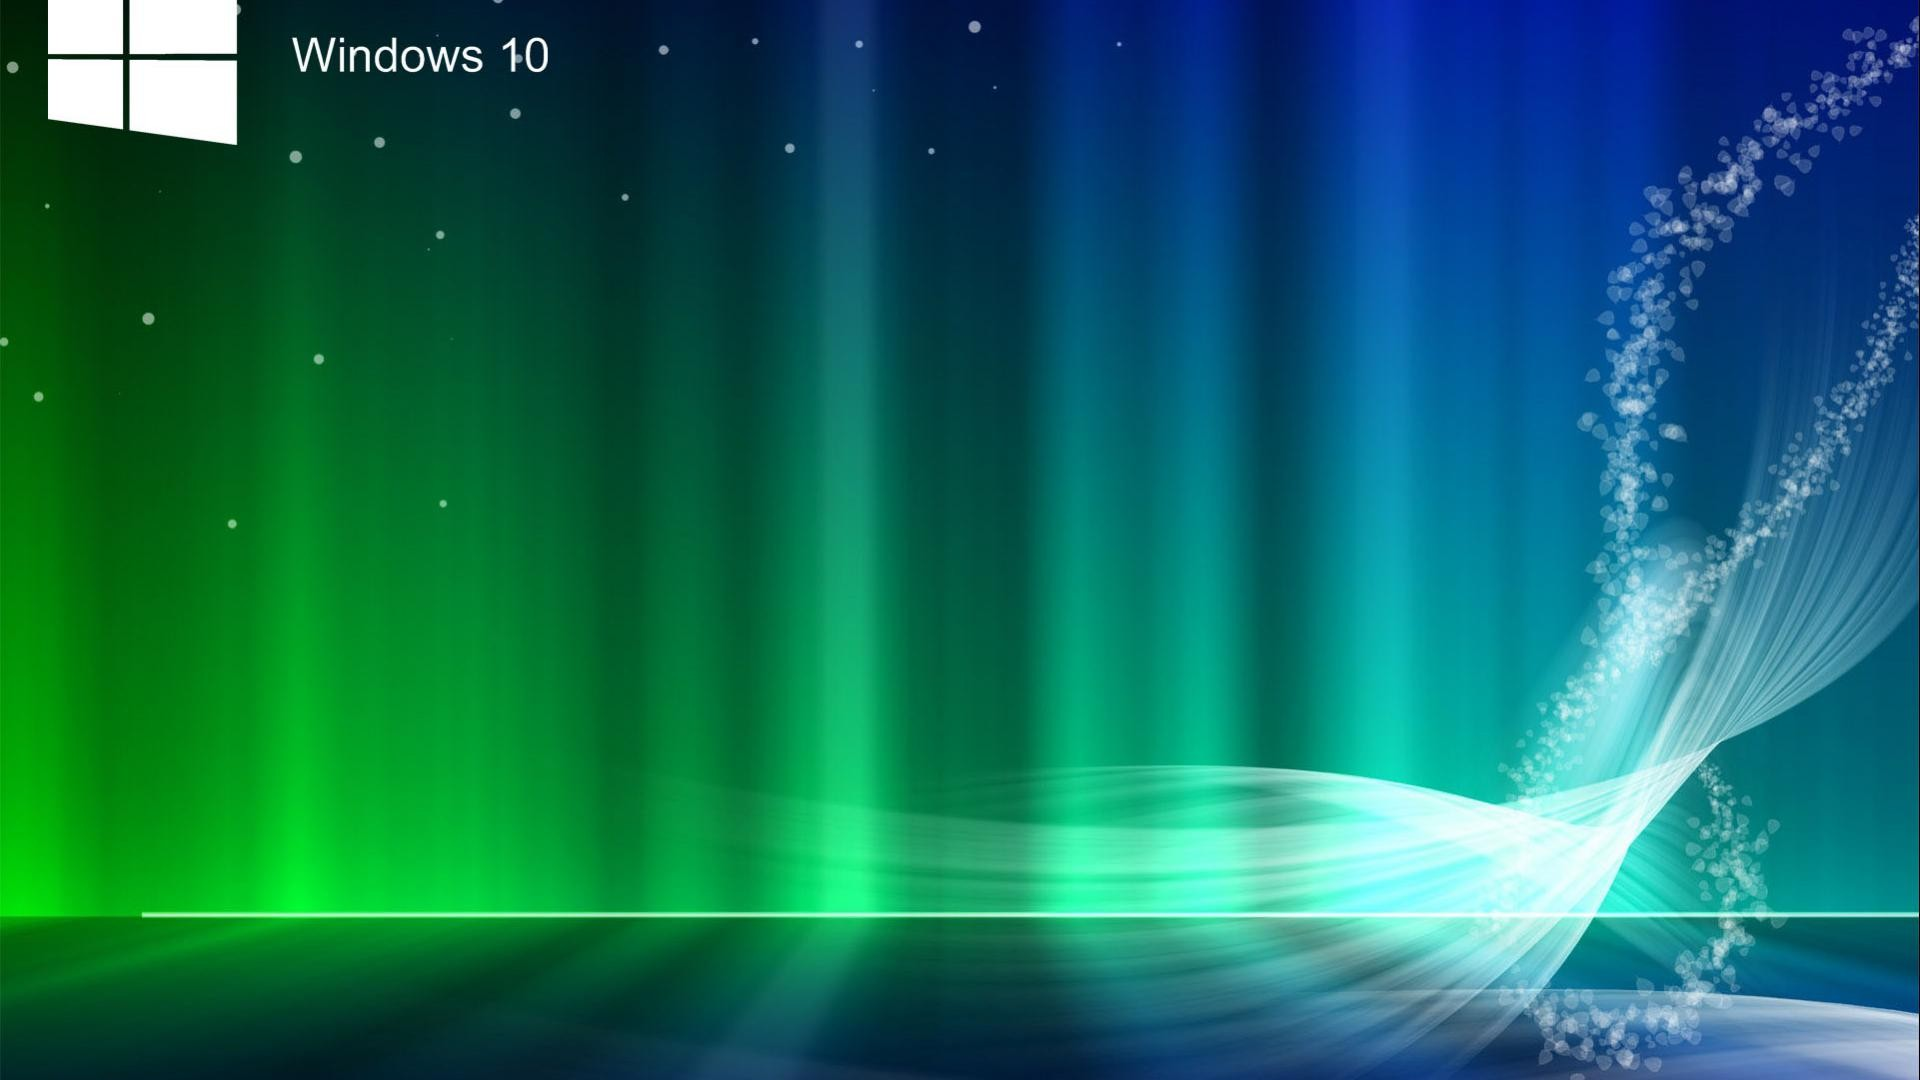 17+ windows 10 wallpapers hd ·① download free amazing backgrounds